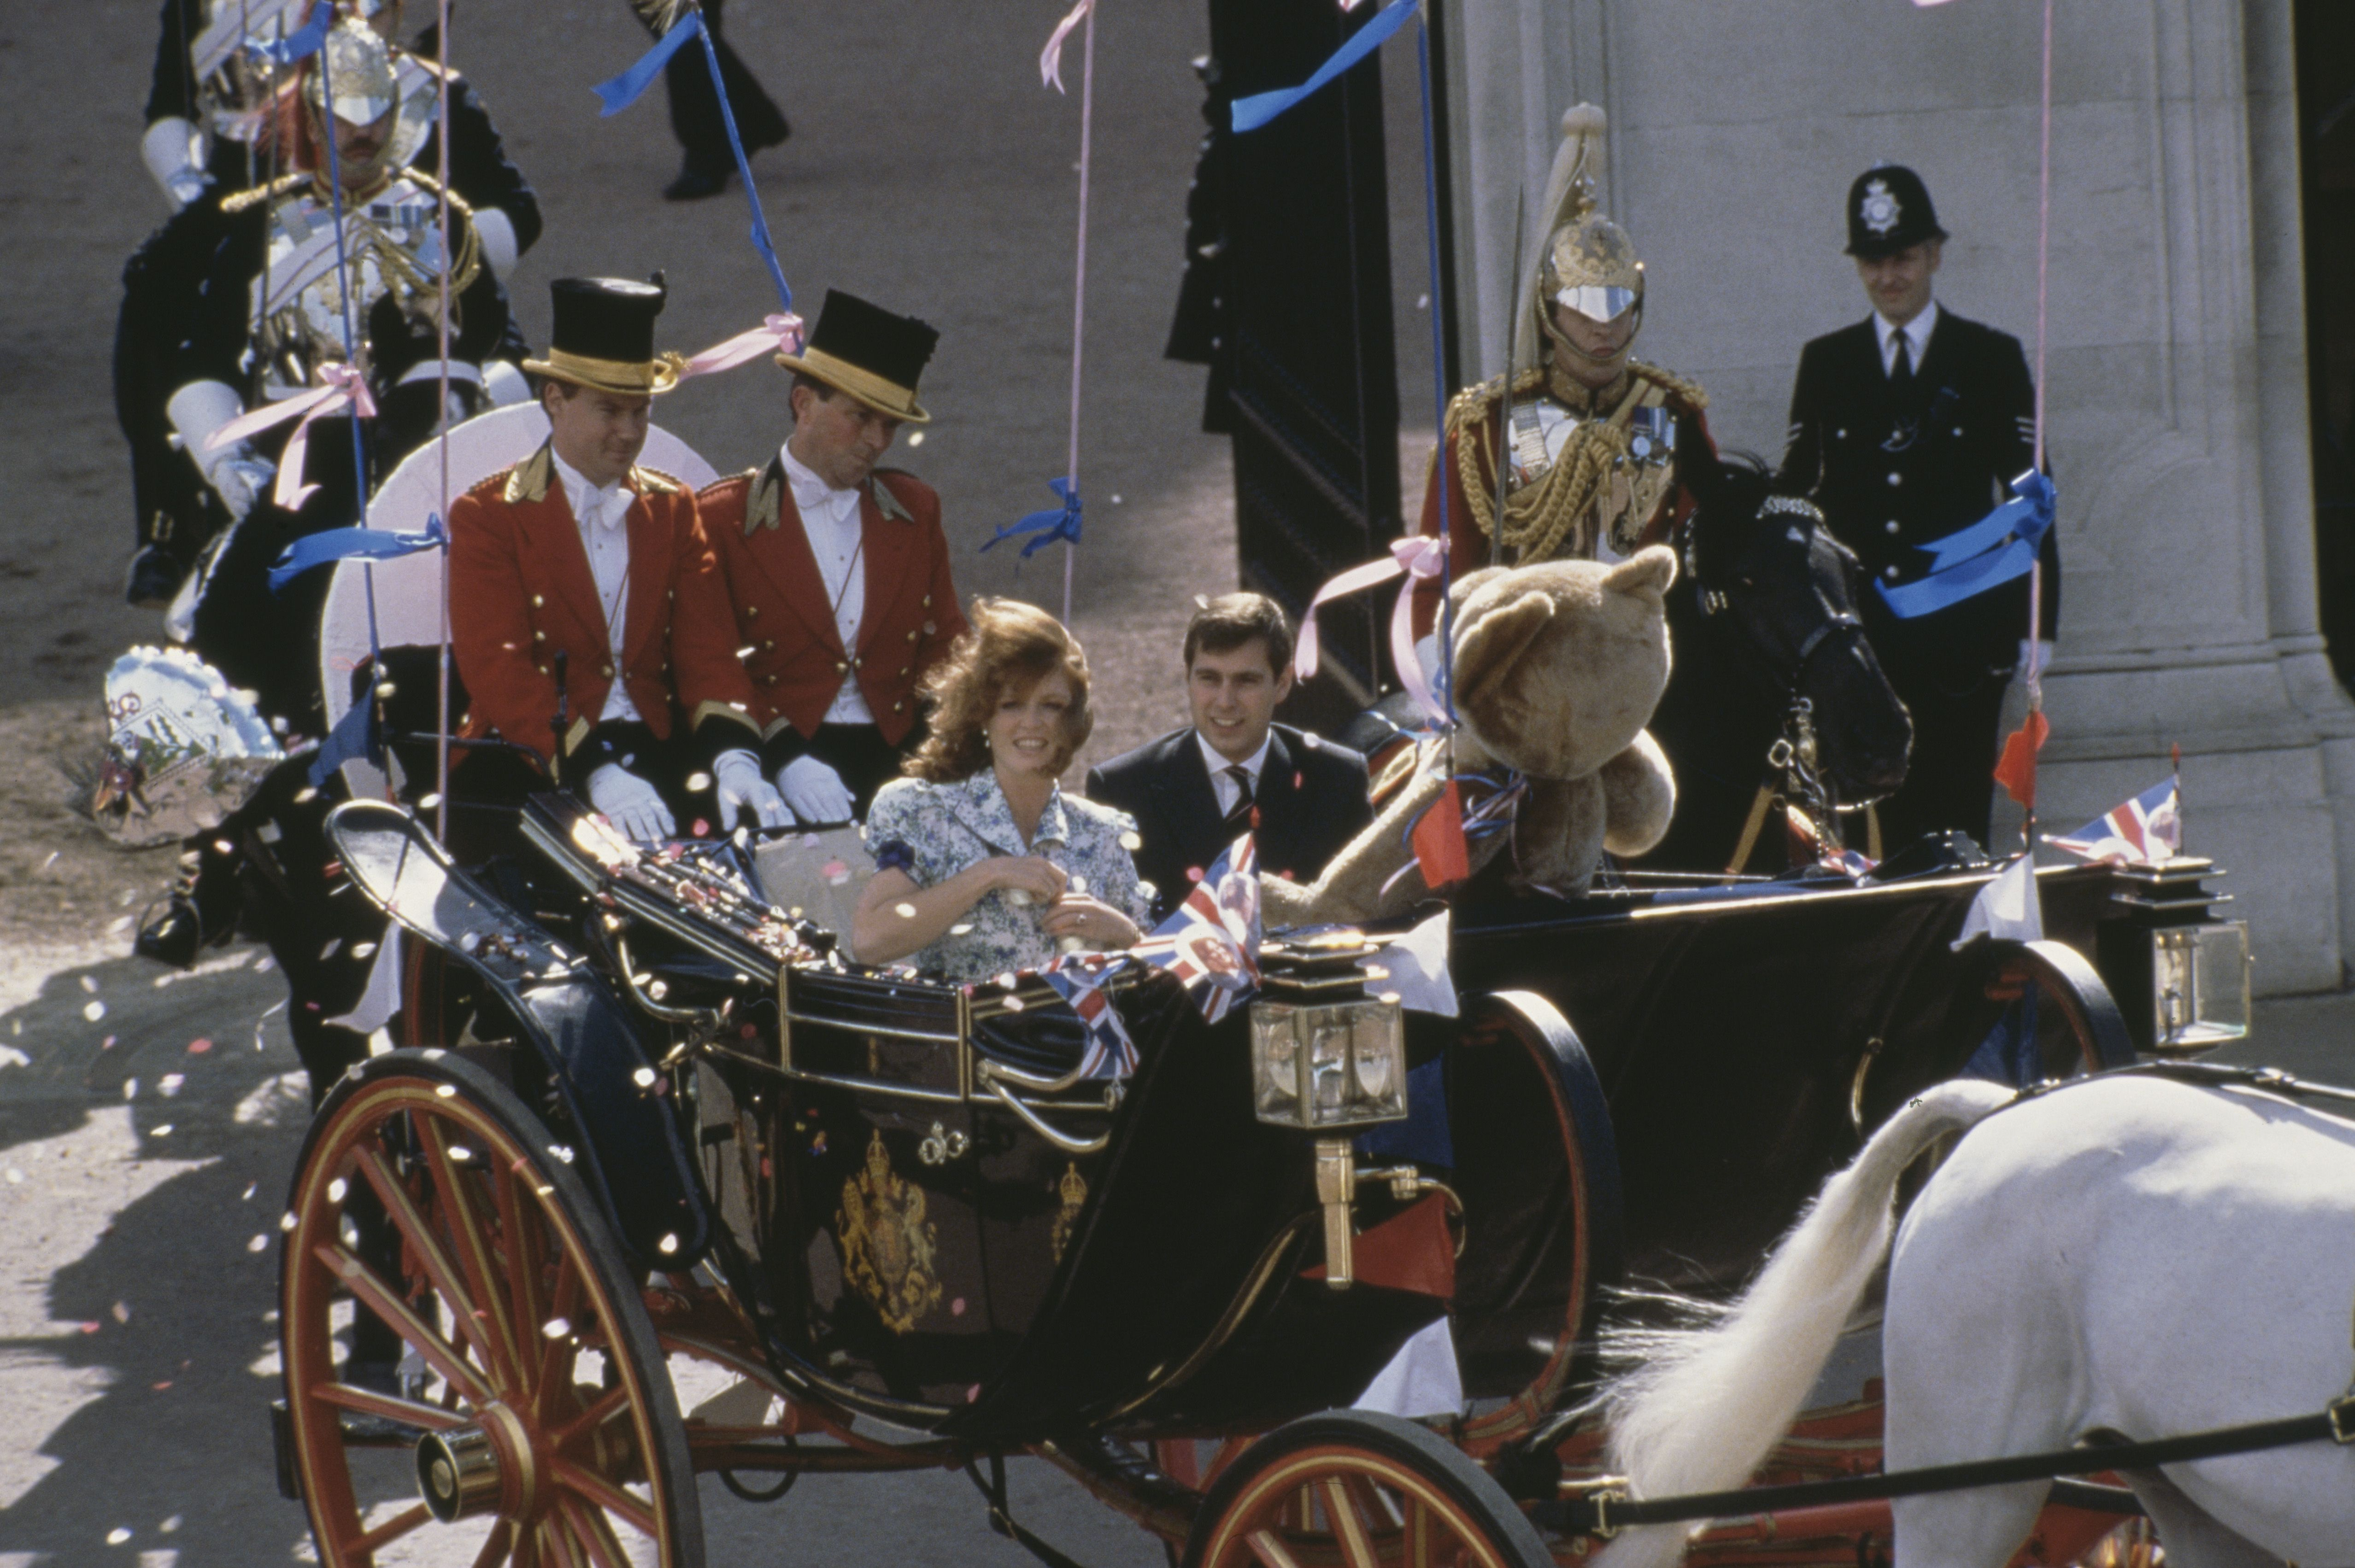 Royal Couple Depart